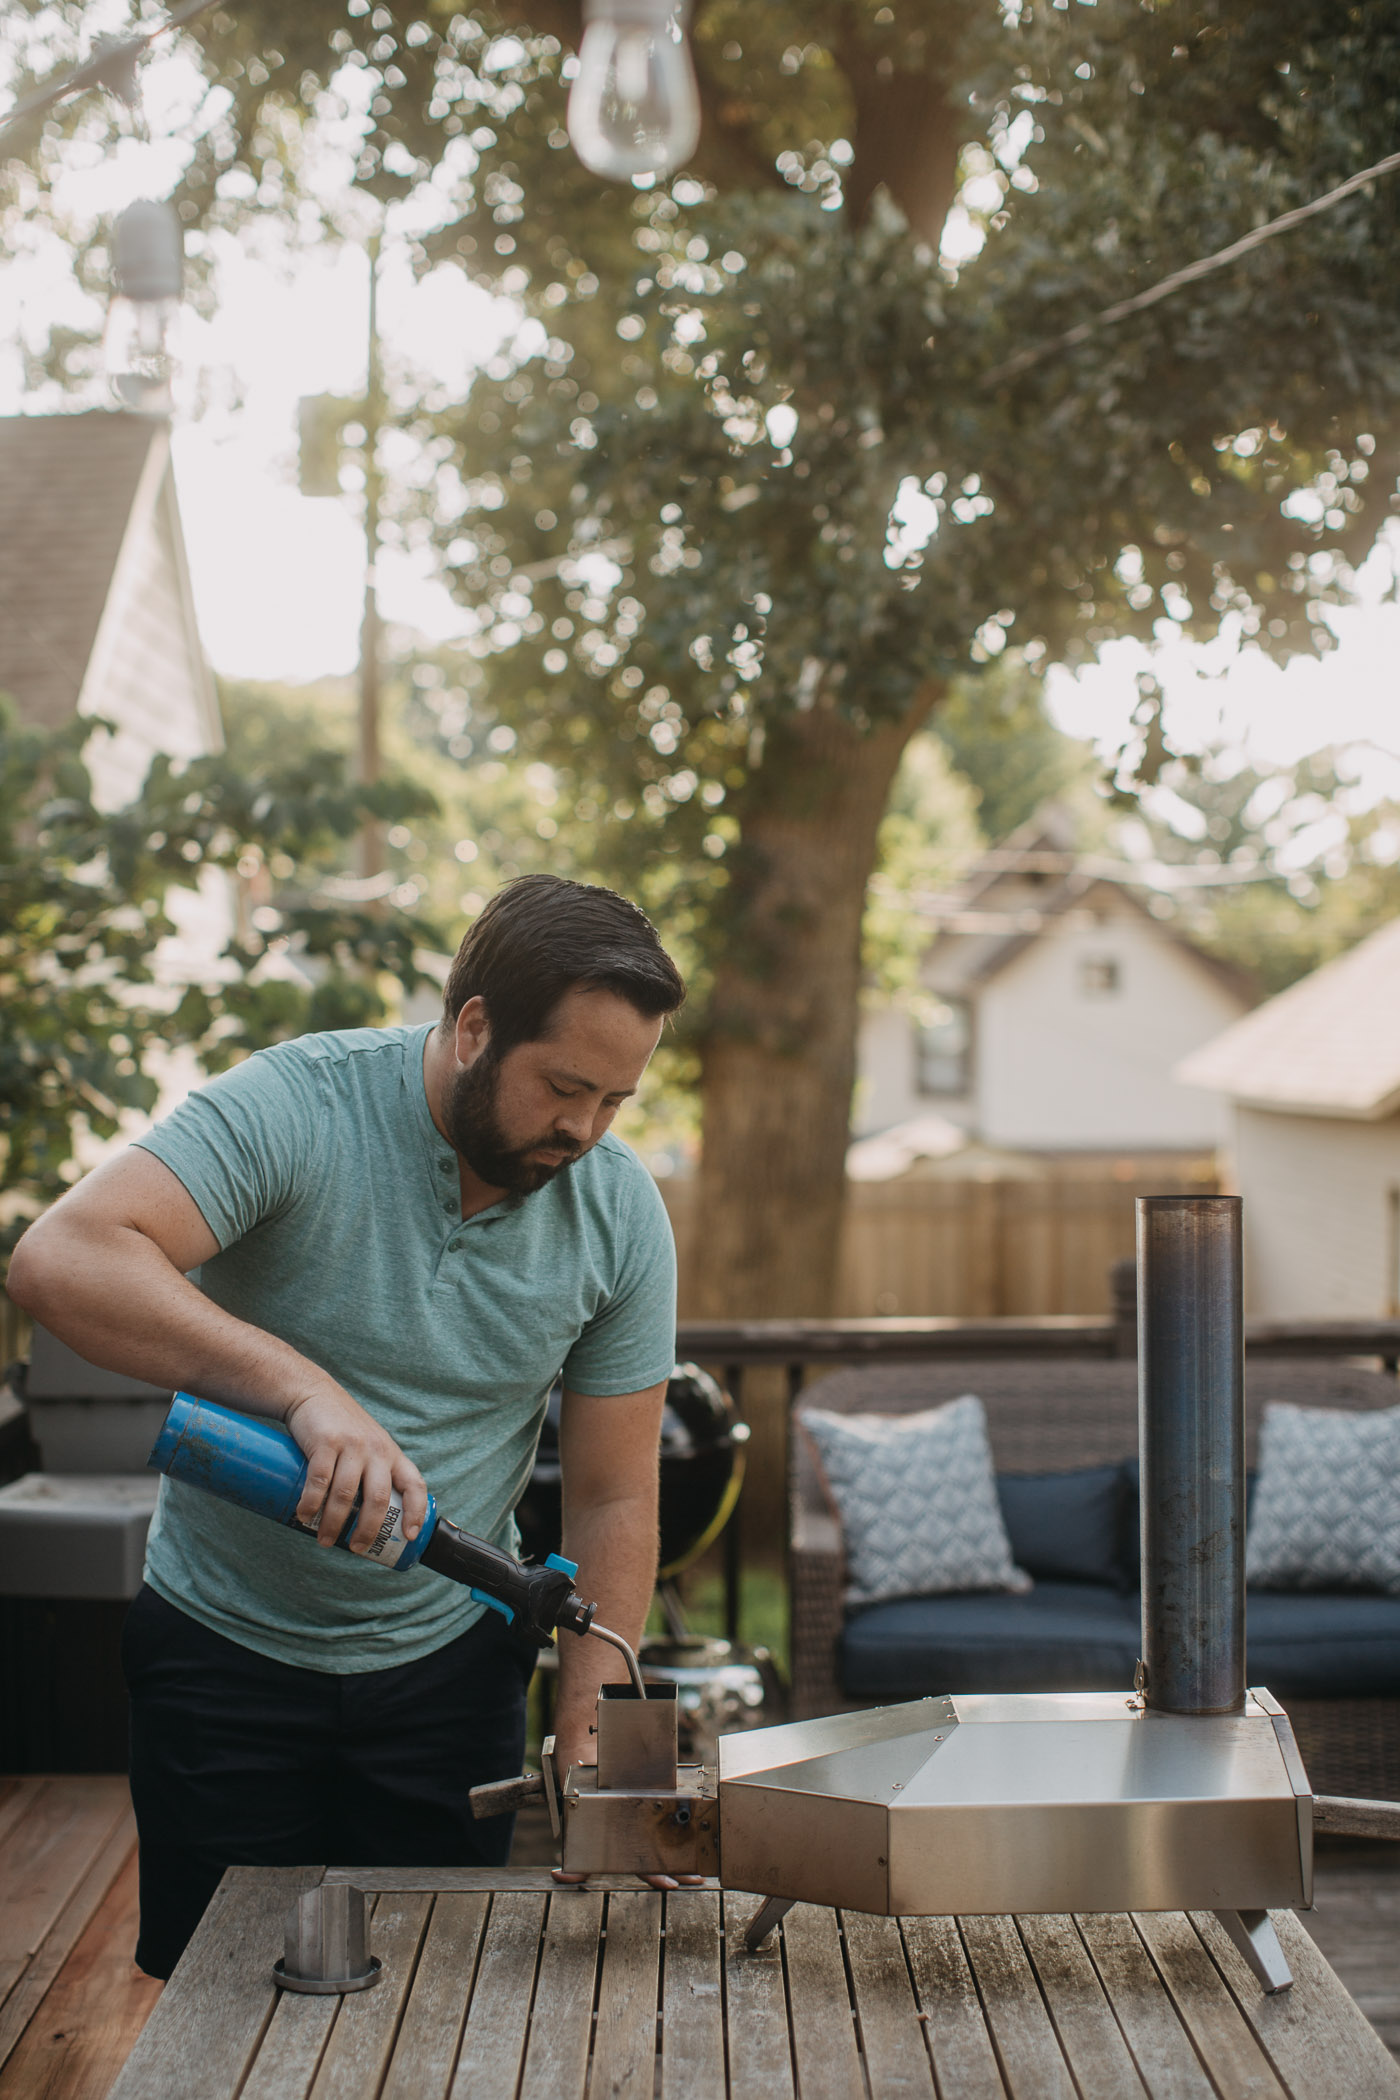 Bearded man in green shirt lighting an Ooni 3 outdoor pizza oven with propane torch.